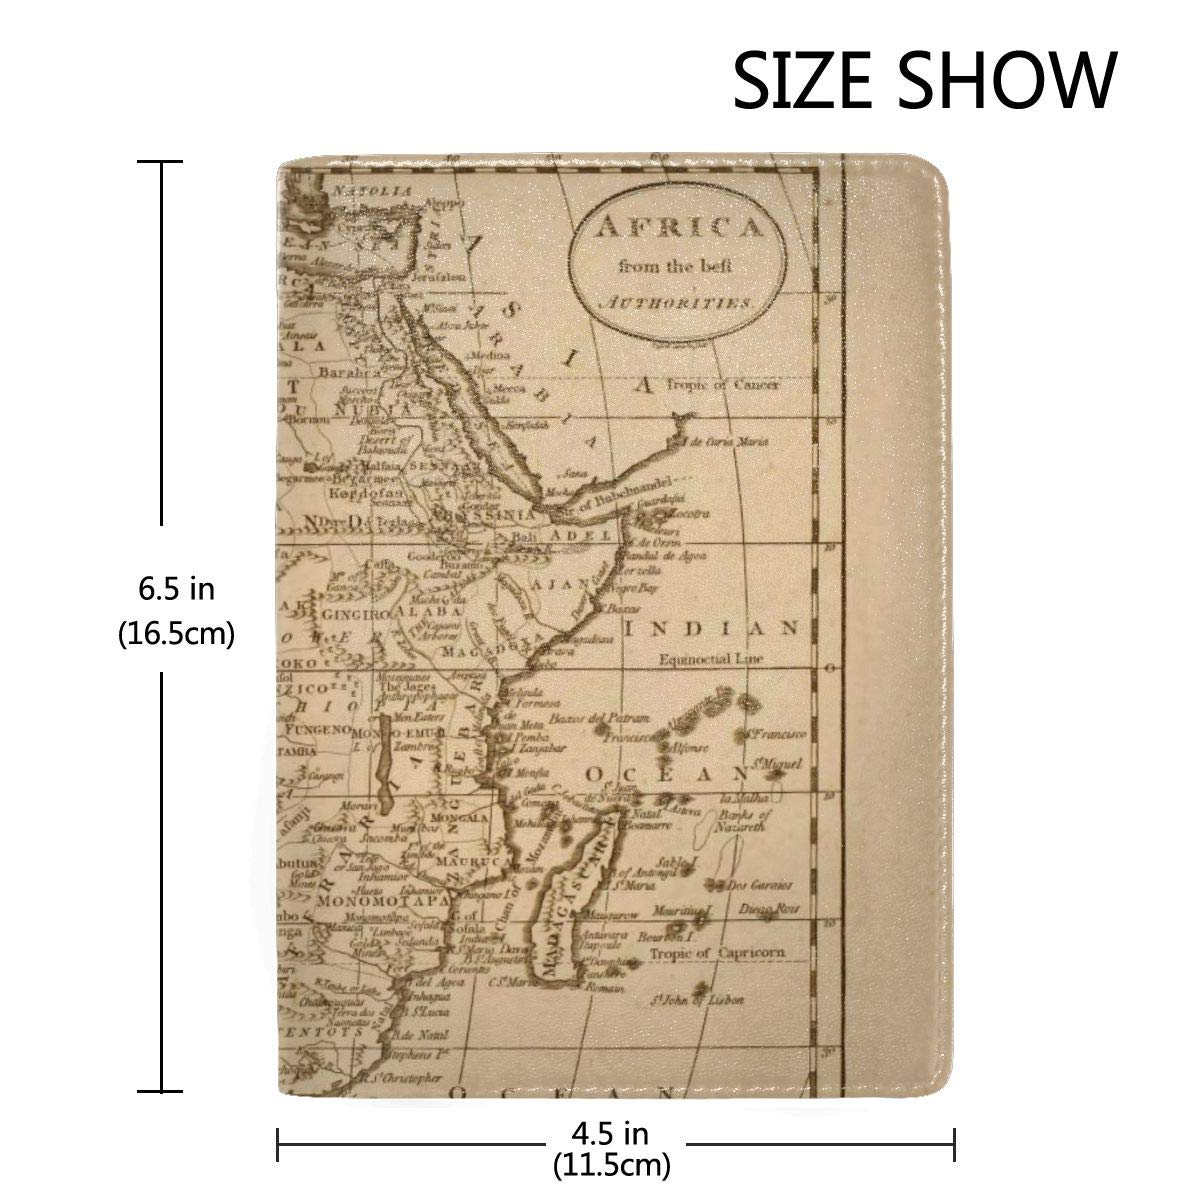 Retro Africa Map Fashion Leather Passport Holder Cover Case Travel Wallet 6.5 In